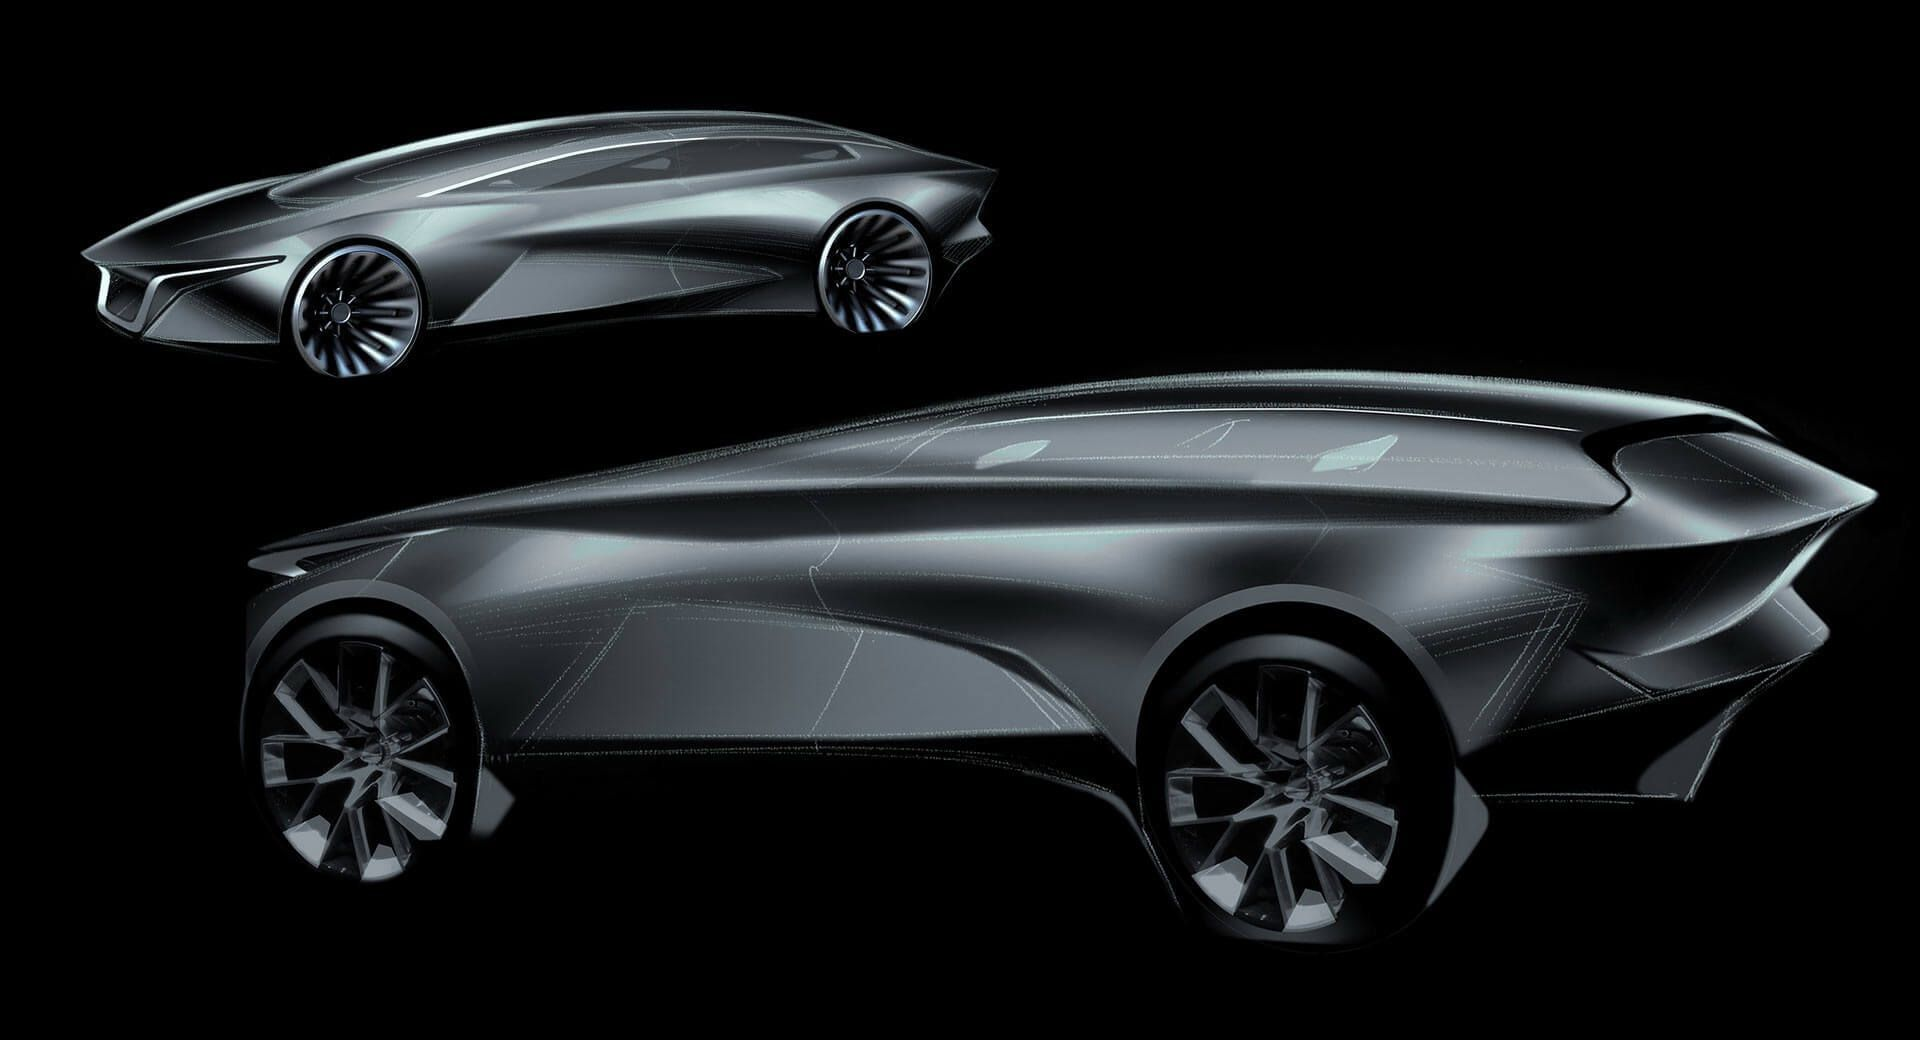 Lagonda SUV Confirmed For 2021 Reveal, Will Be Fully